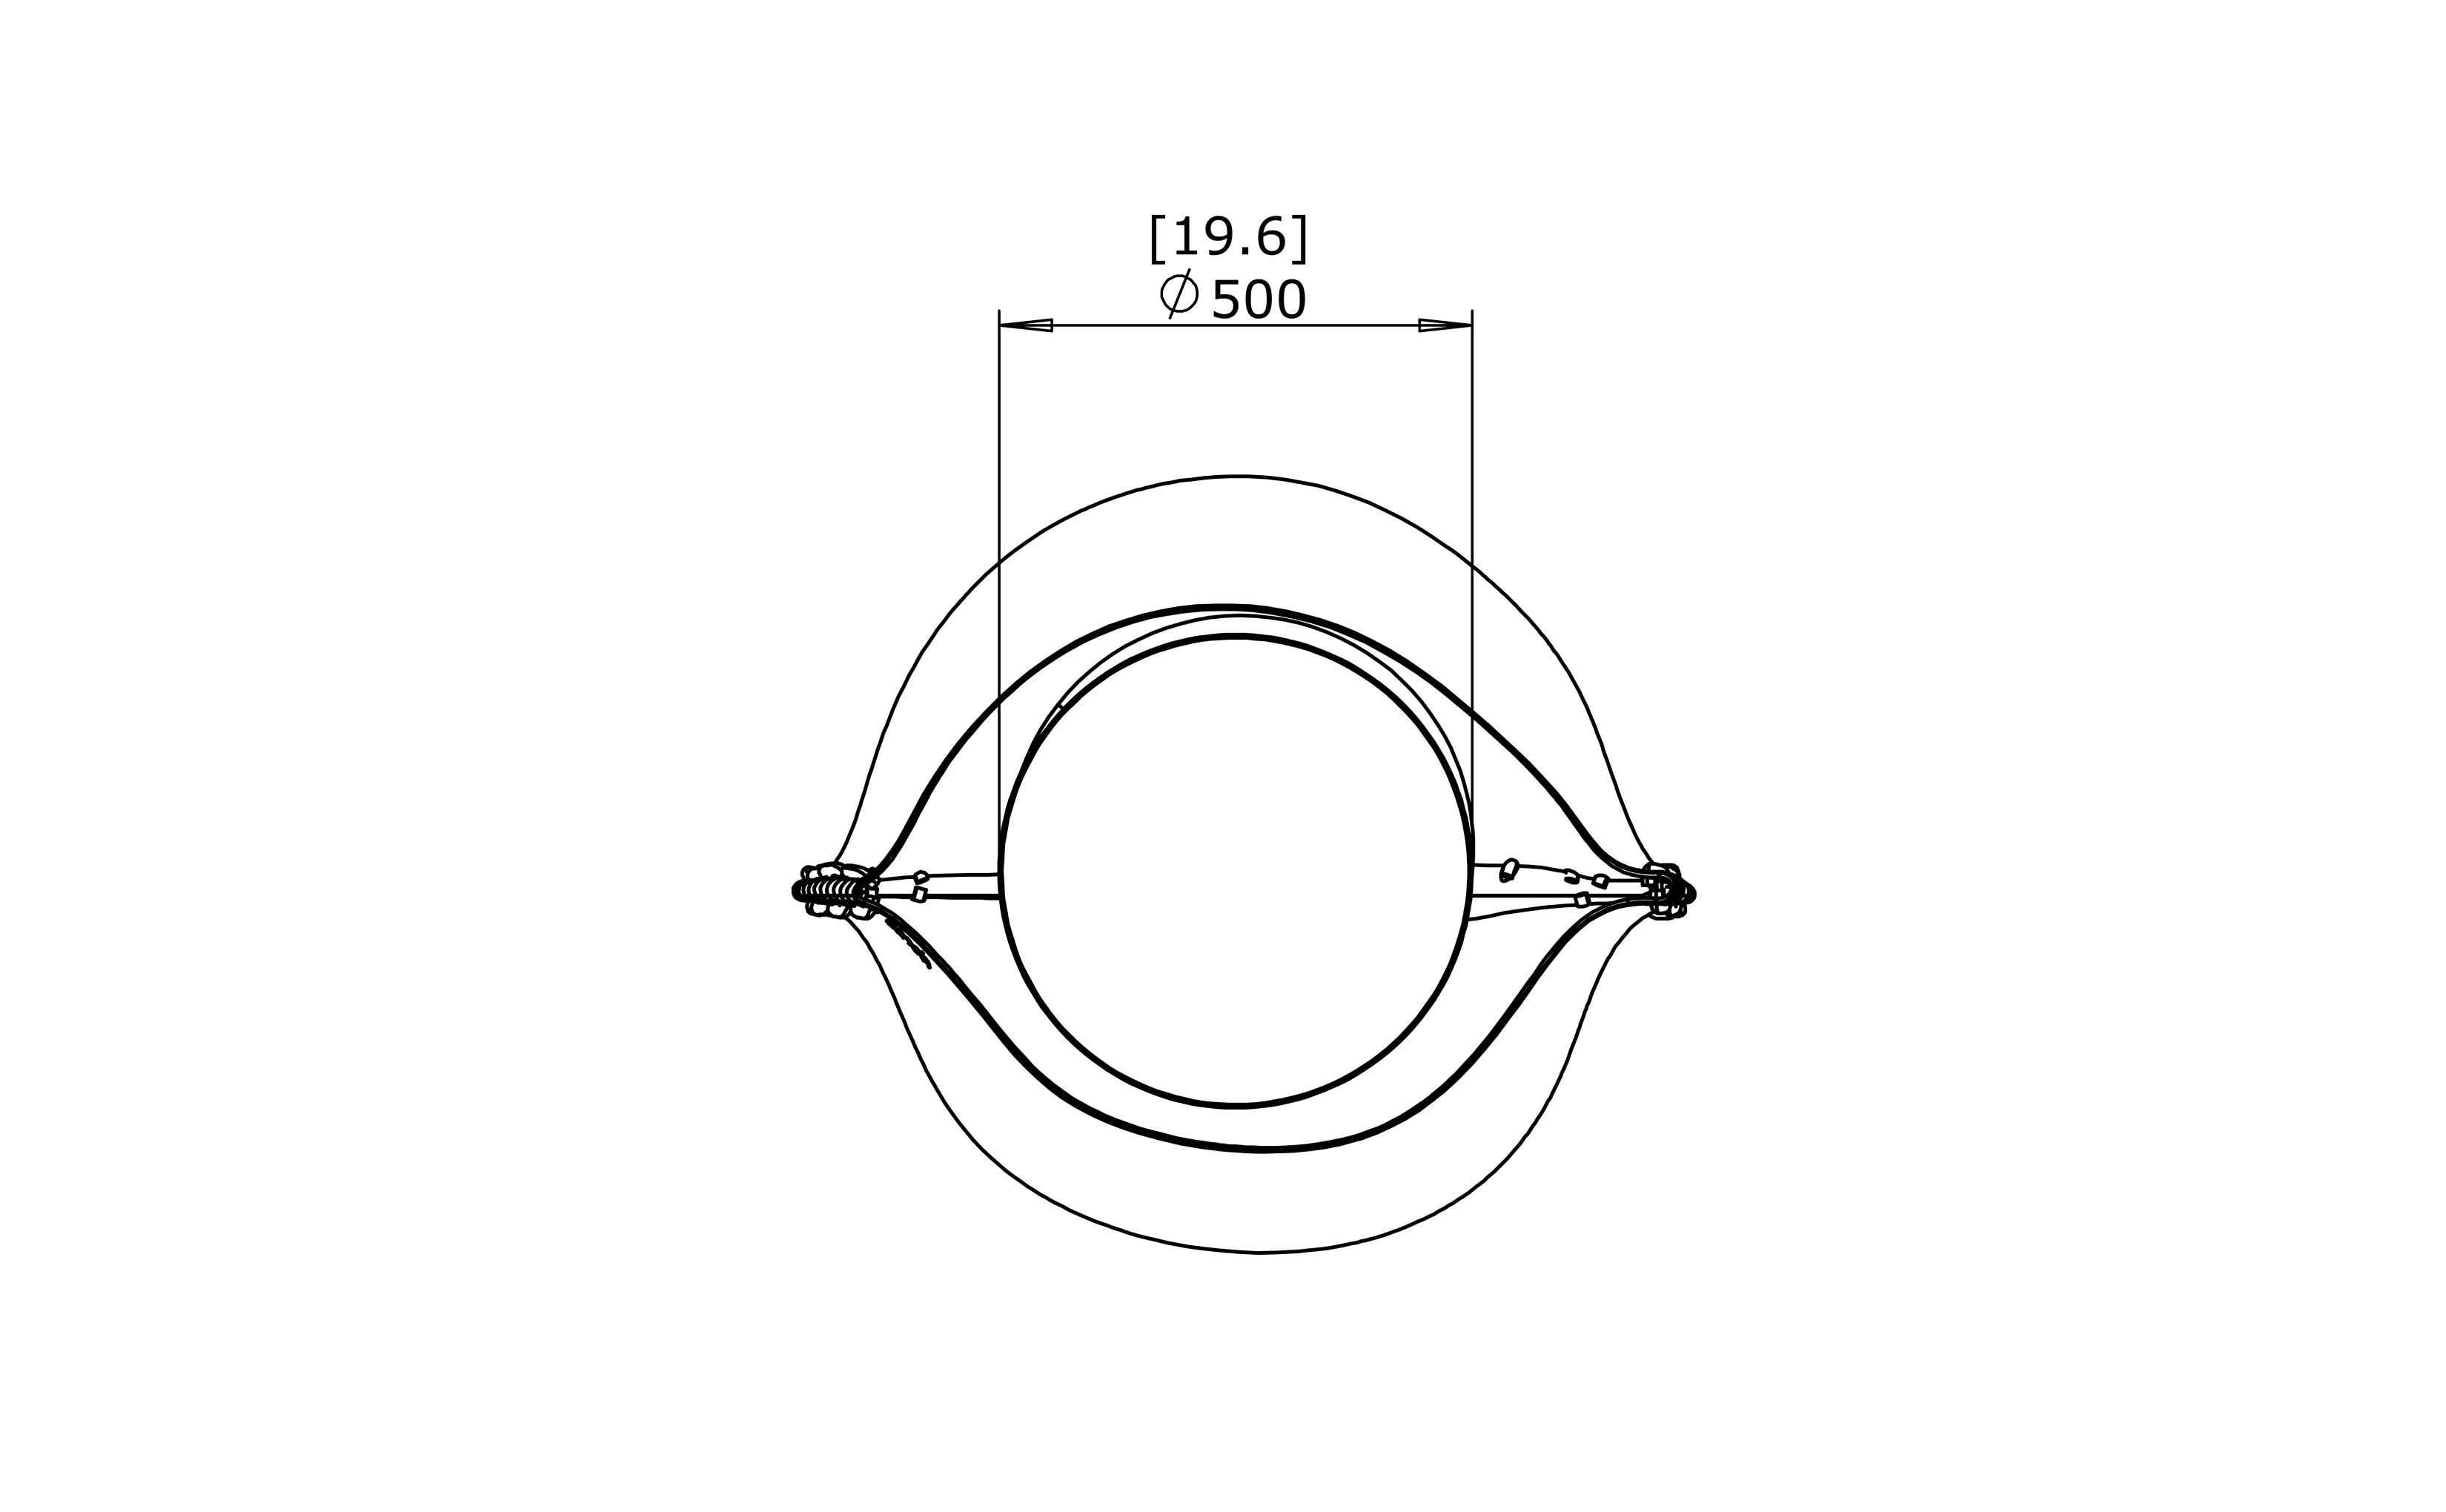 stitch-50-bld.1.p.sti.50-top-view-technical-drawing-by-blinde-design.jpg